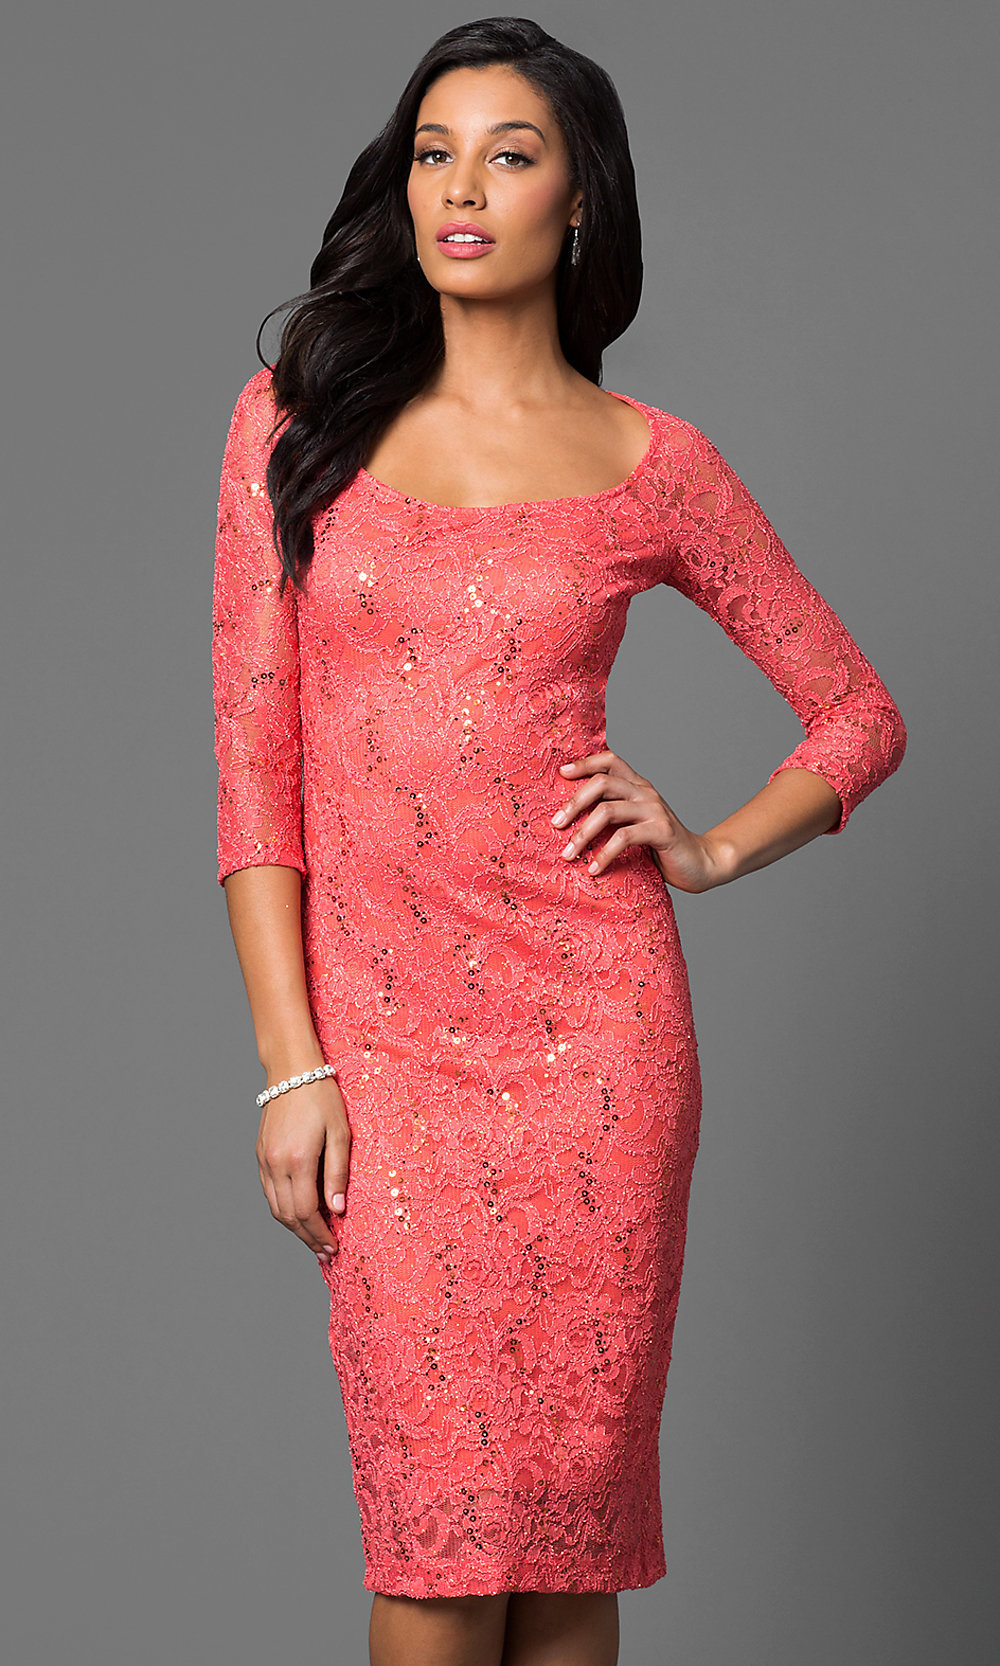 Sequined Lace Midi Dress With Sleeves - Promgirl 603d31c03